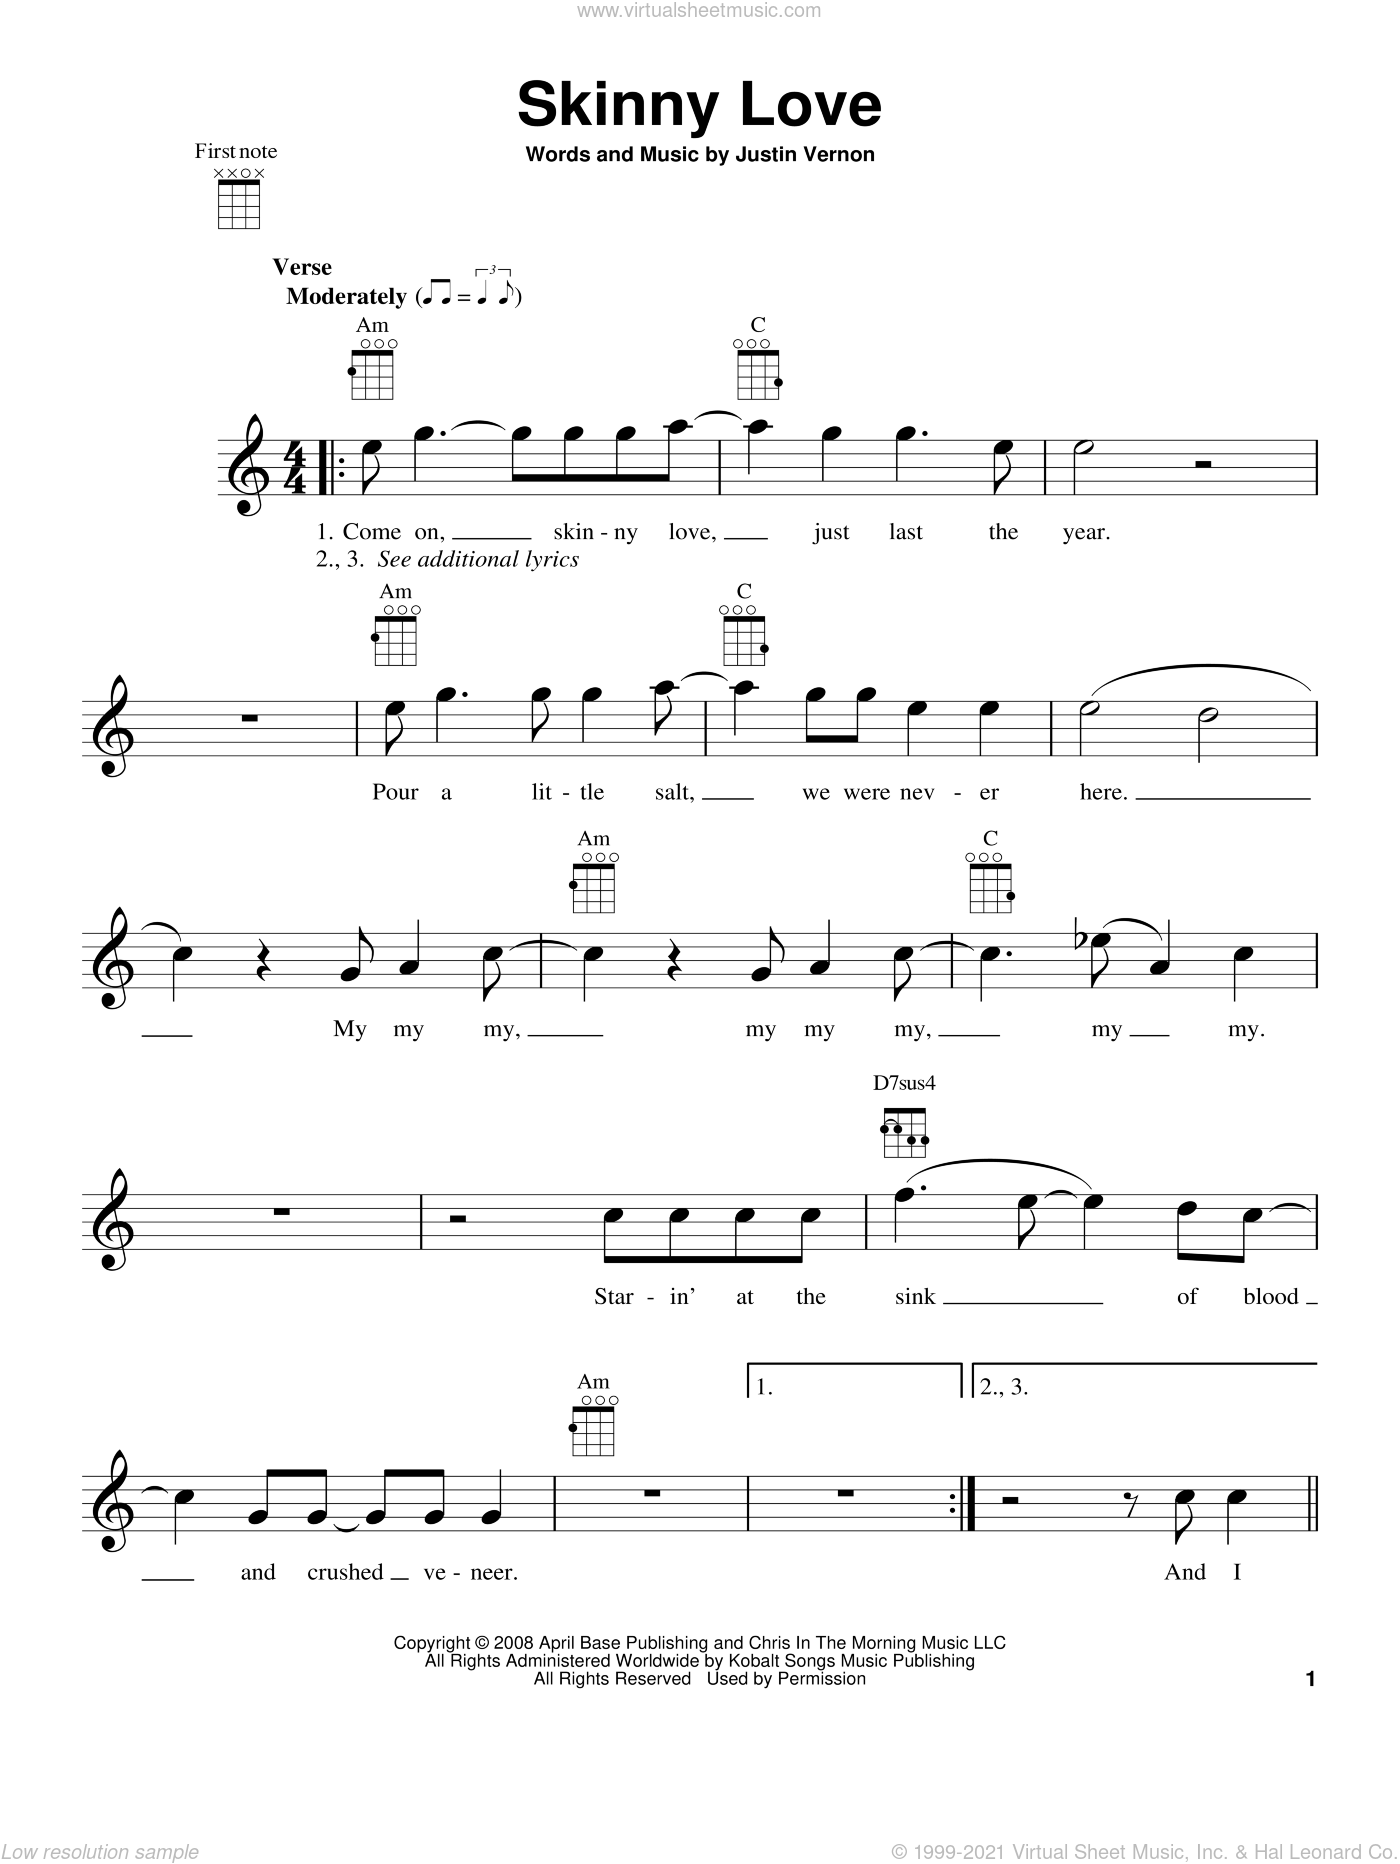 Skinny Love sheet music for ukulele by Justin Vernon